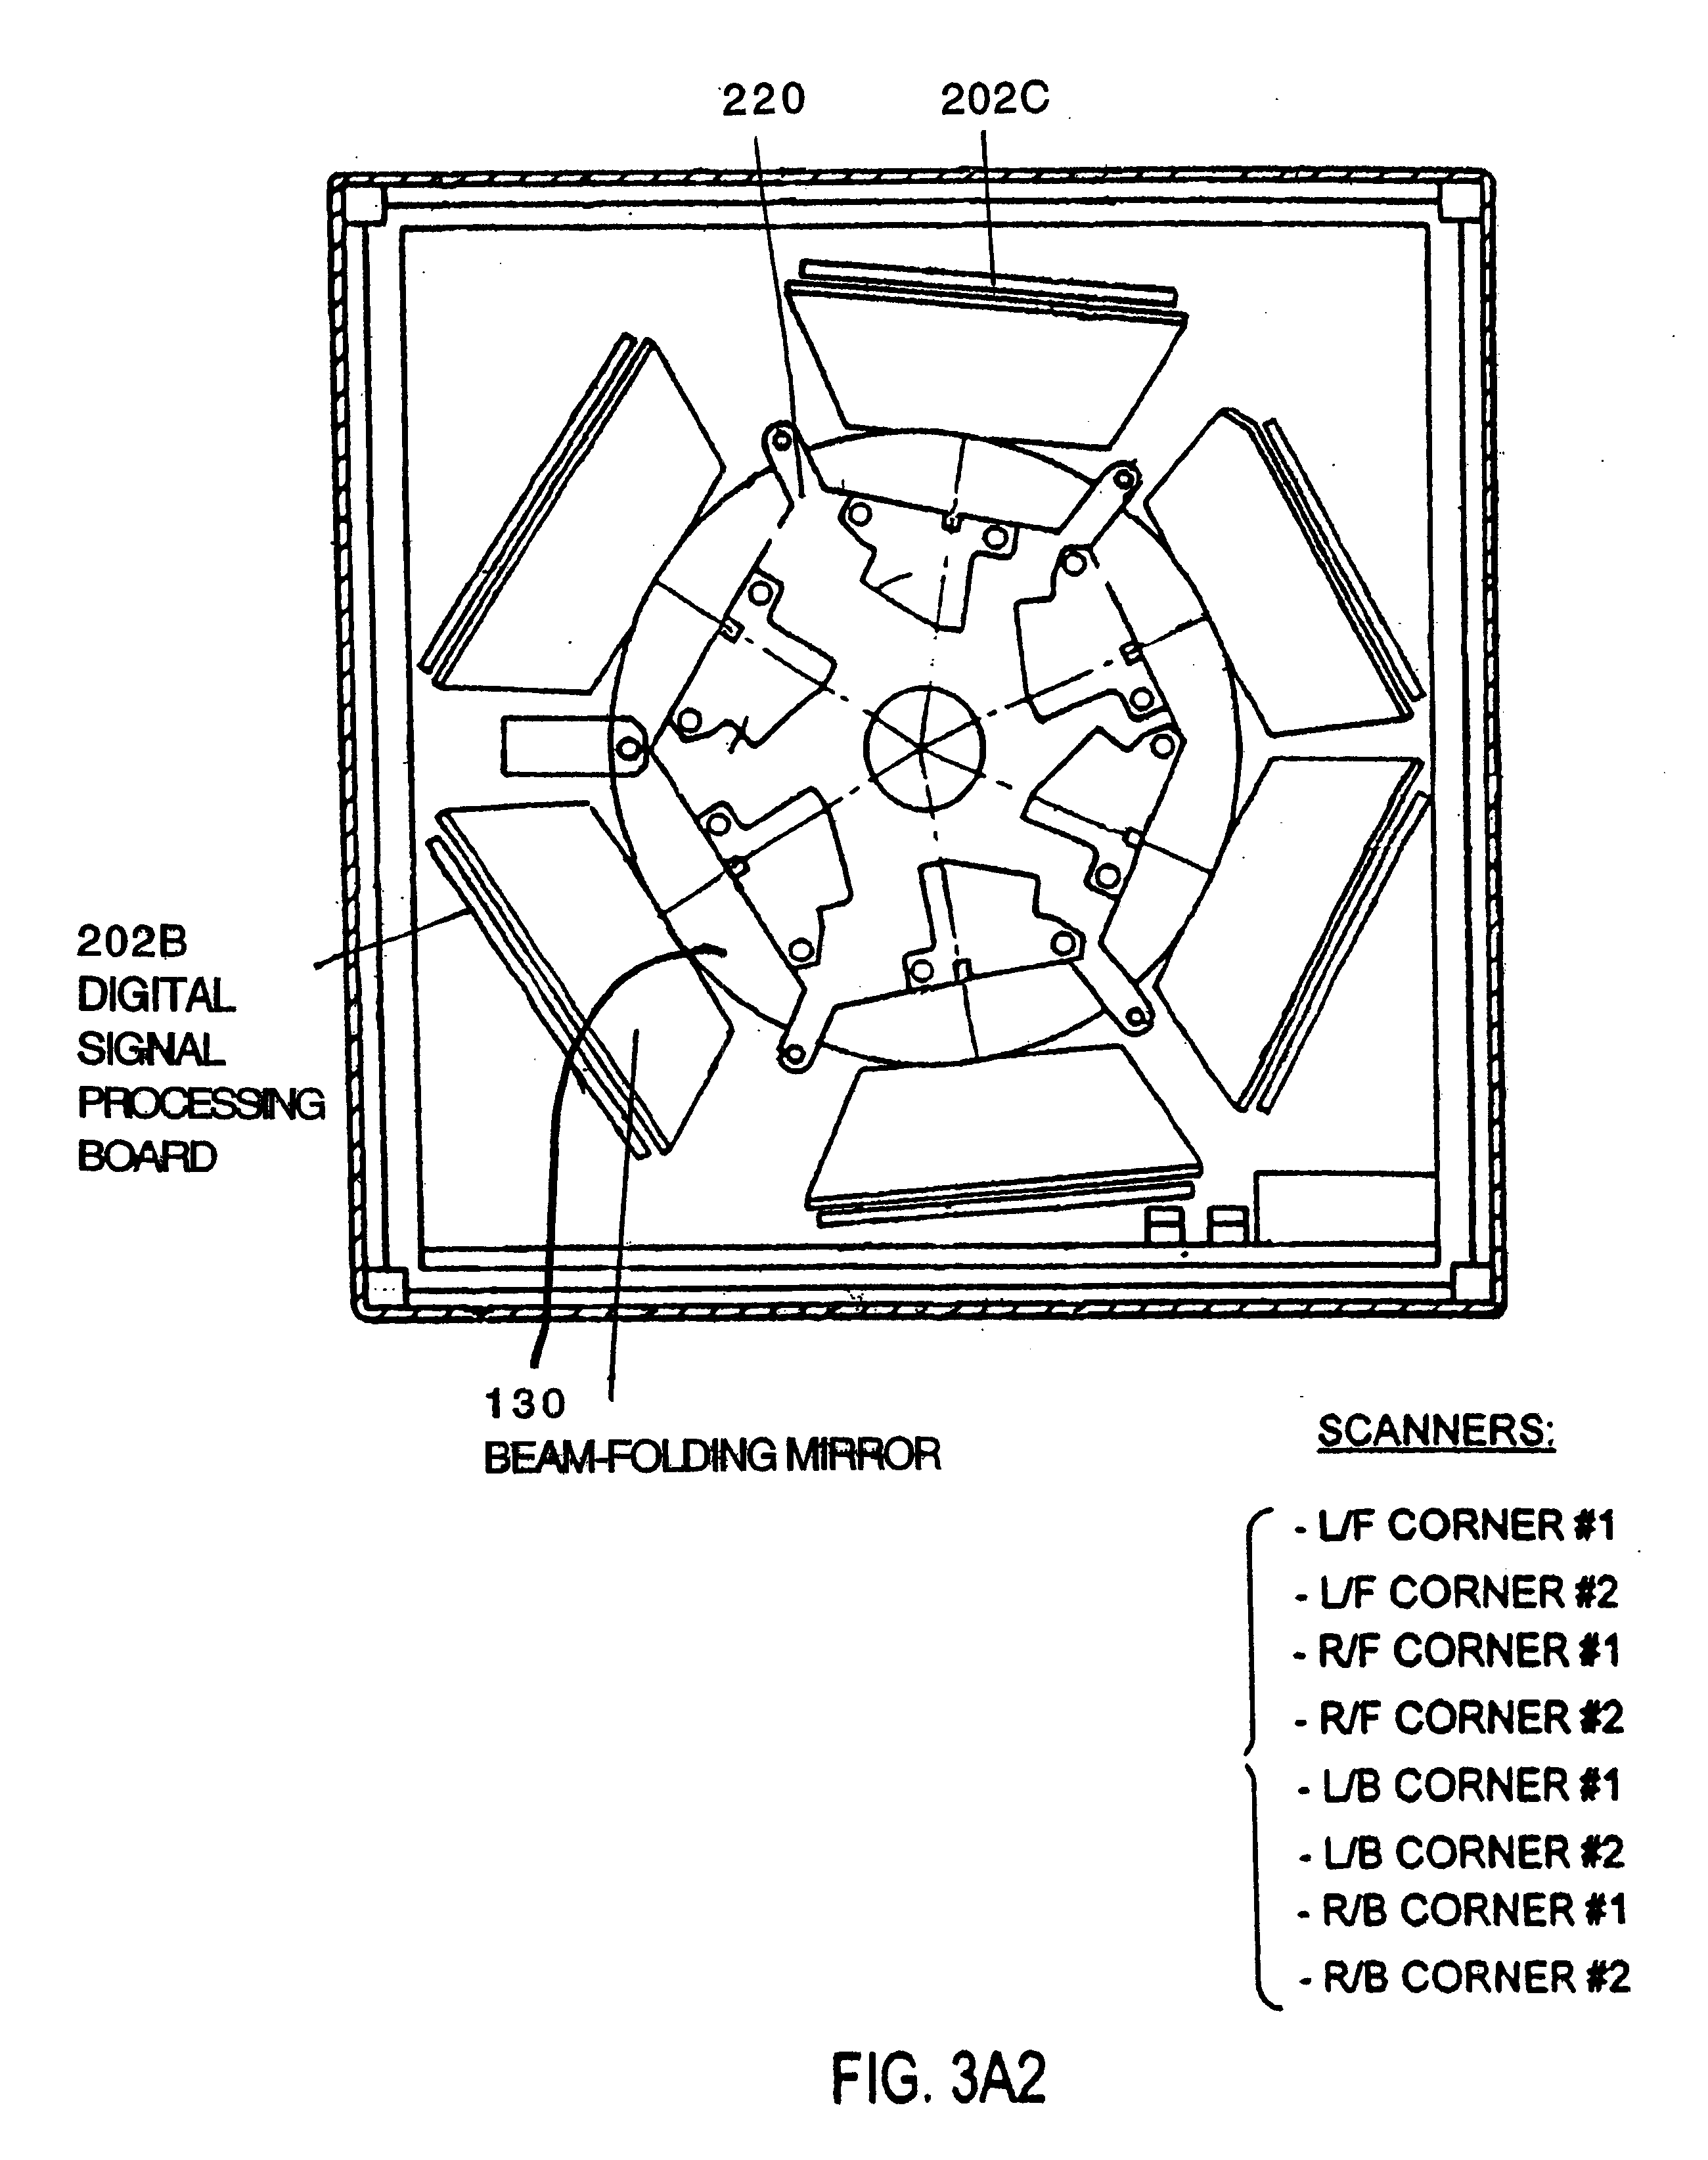 patent us 6 517 004 b2 Steel Purlin Beams Charts patent images